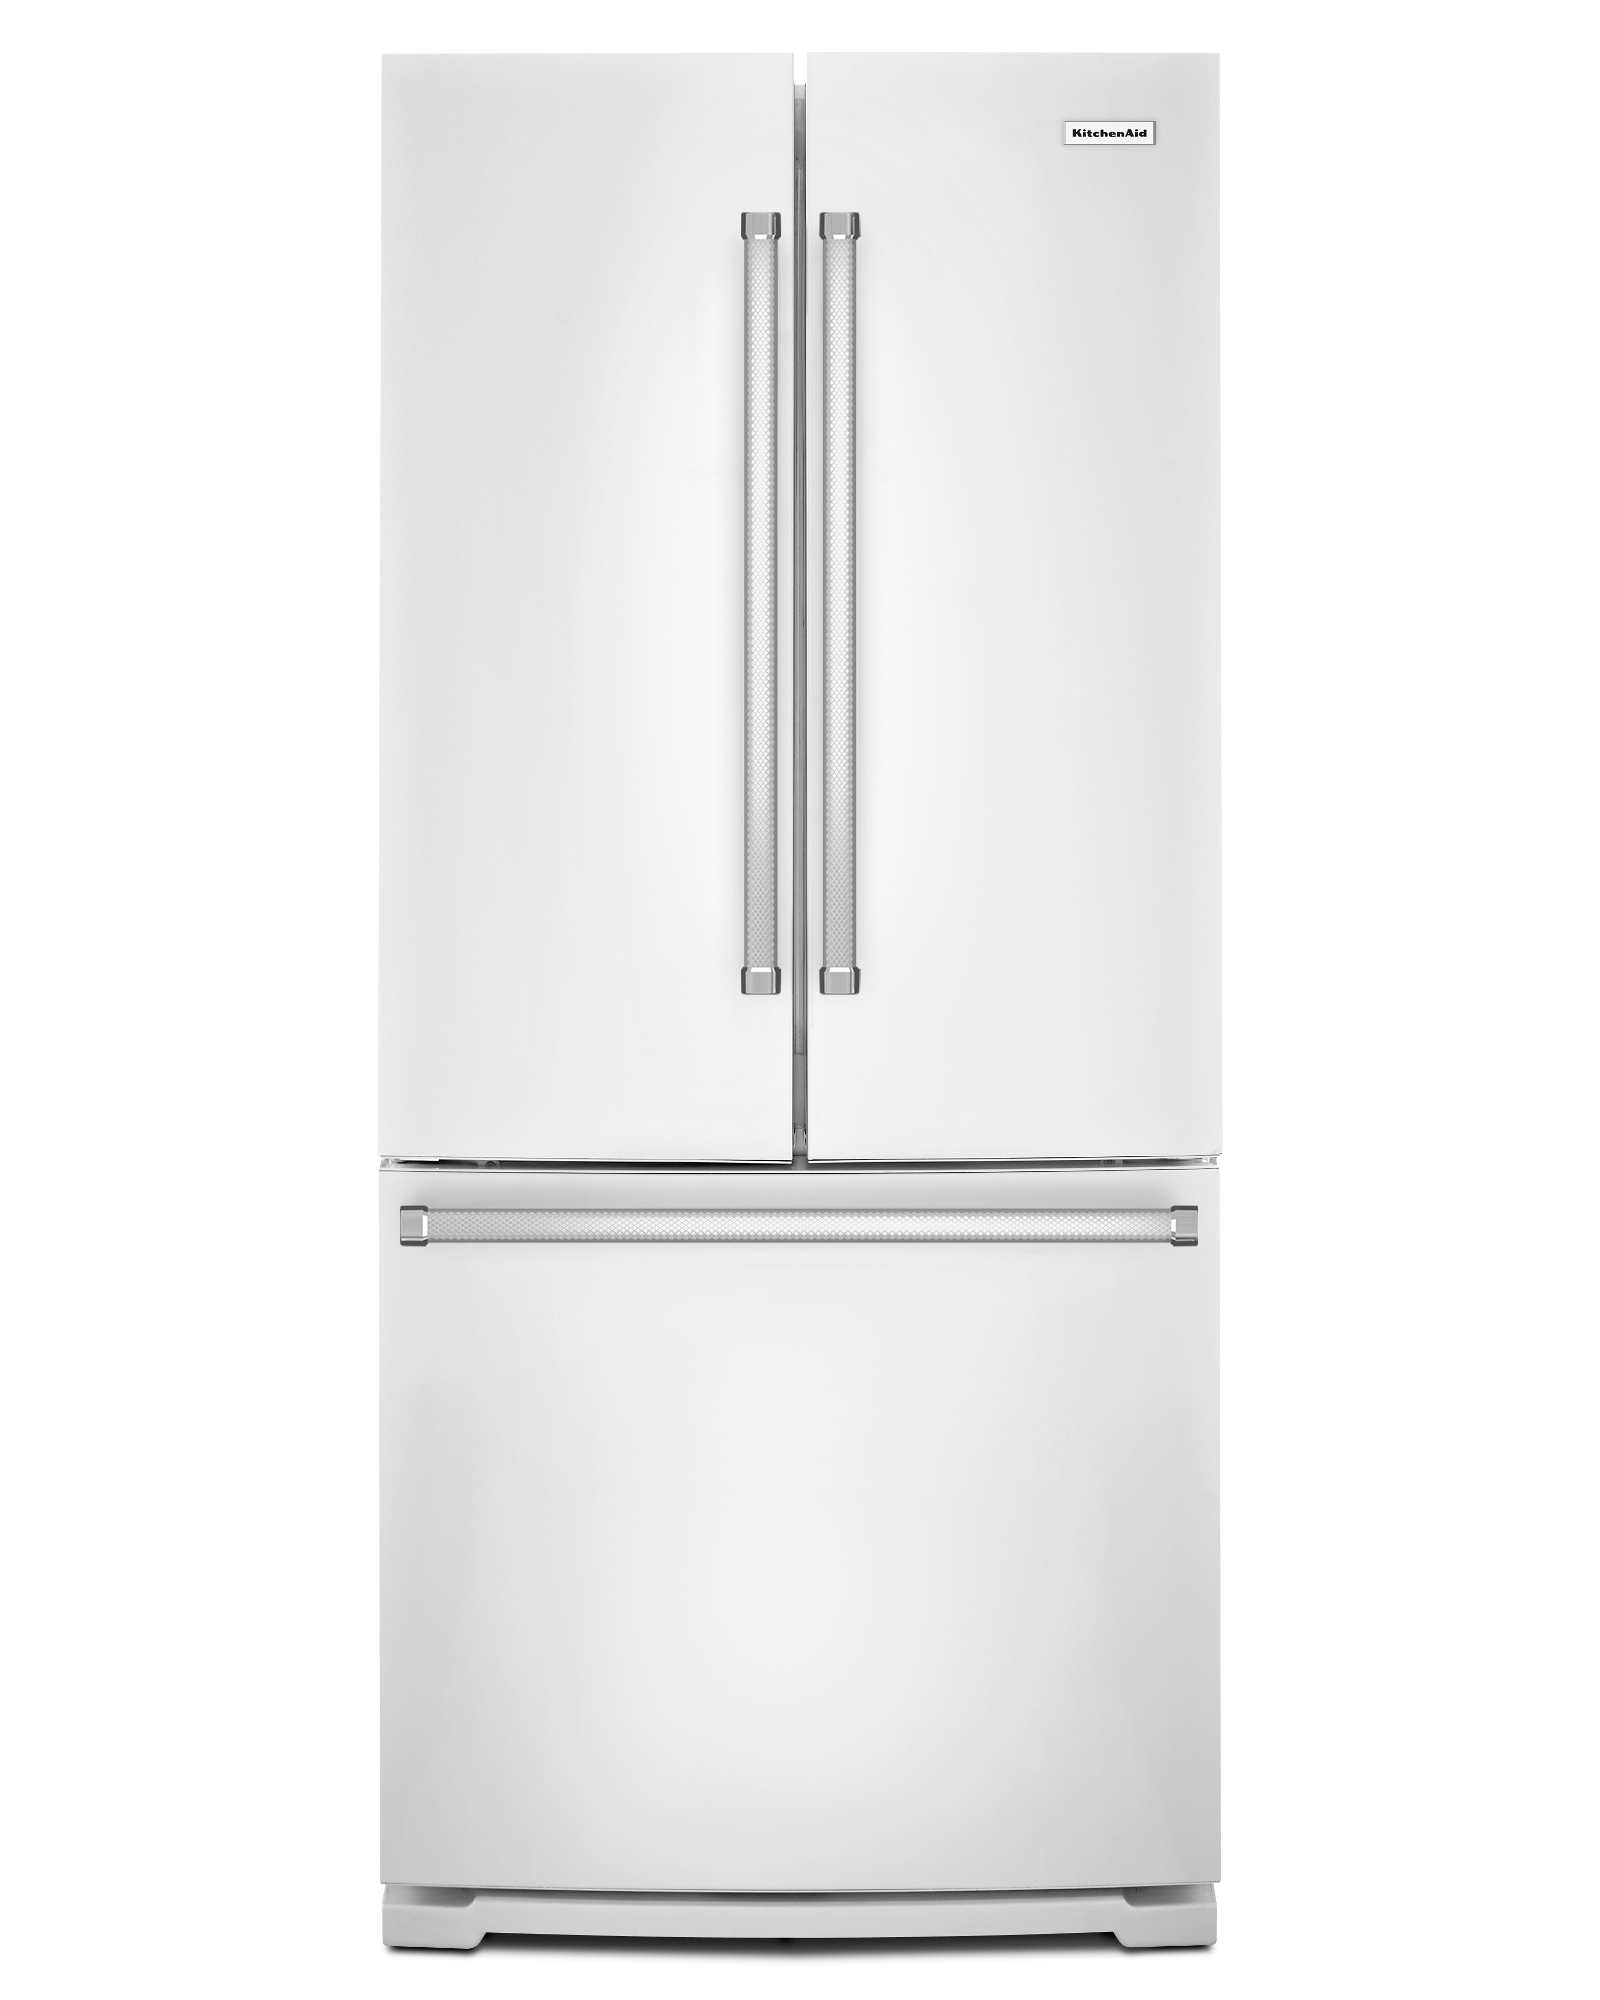 KitchenAid KRFF300EWH 20 cu. ft. French Door Refrigerator - White